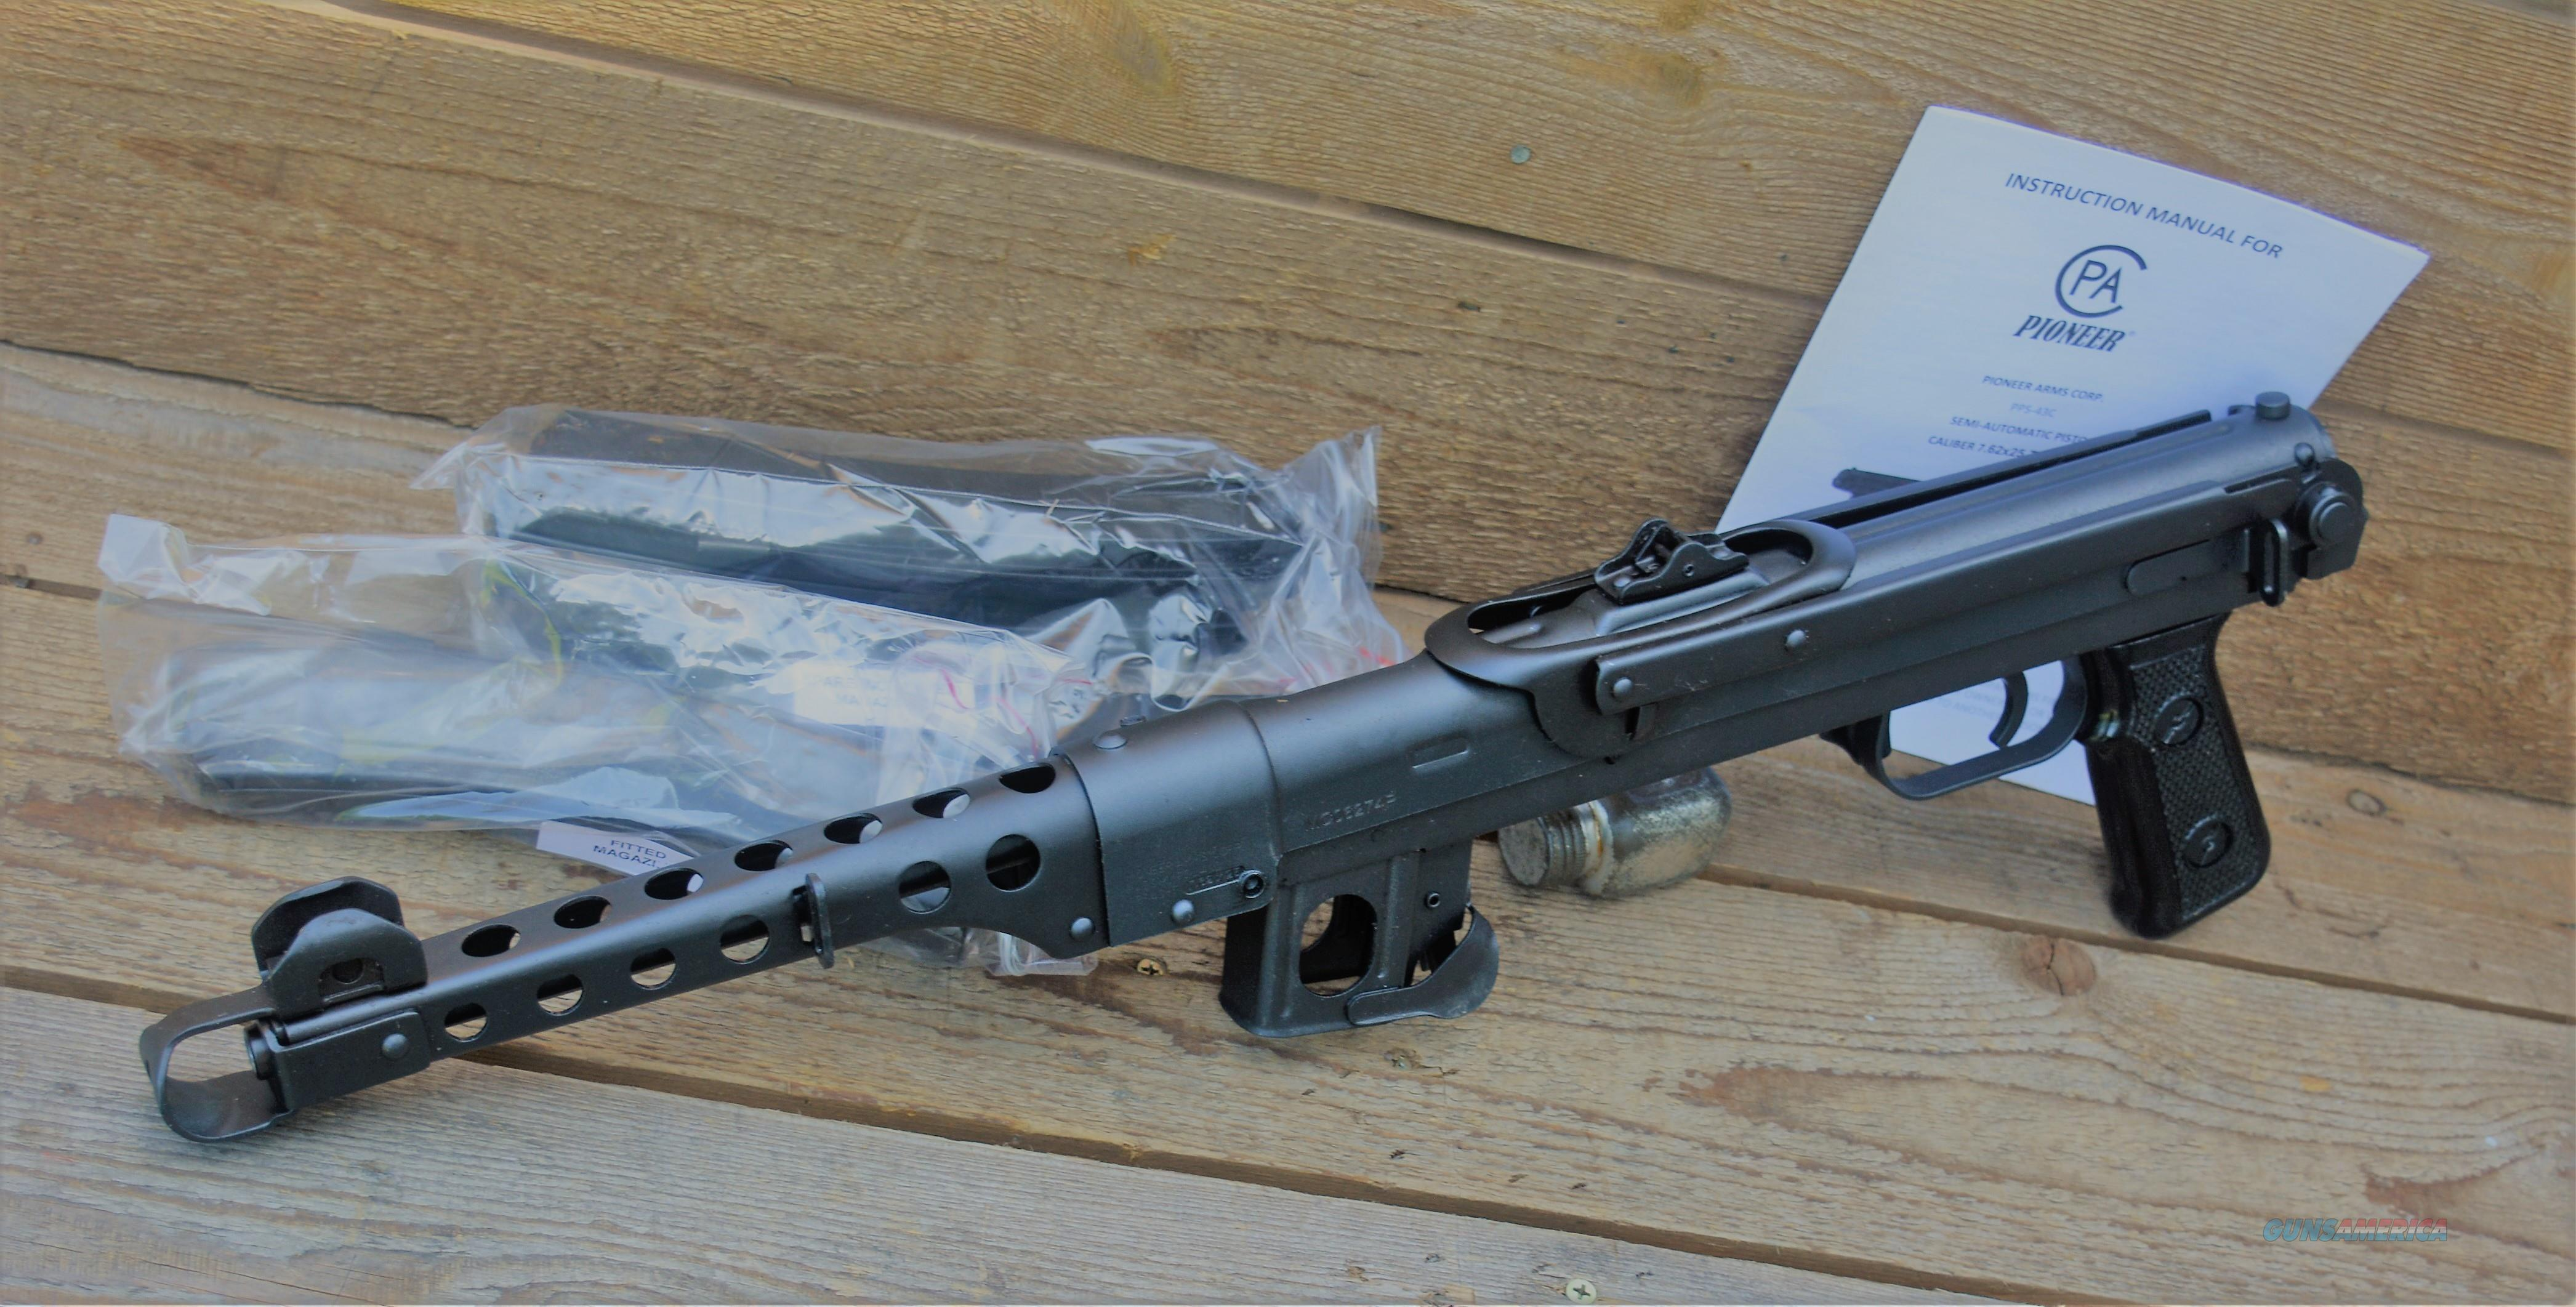 $55 Easy Pay  Polish IMG PPS43-C PPS43 Semi Auto Pistol  7.62x25mm Tokarev 35 Rounds stamped steel receiver muzzle brake fixed stock  Guns > Pistols > Military Misc. Pistols Non-US